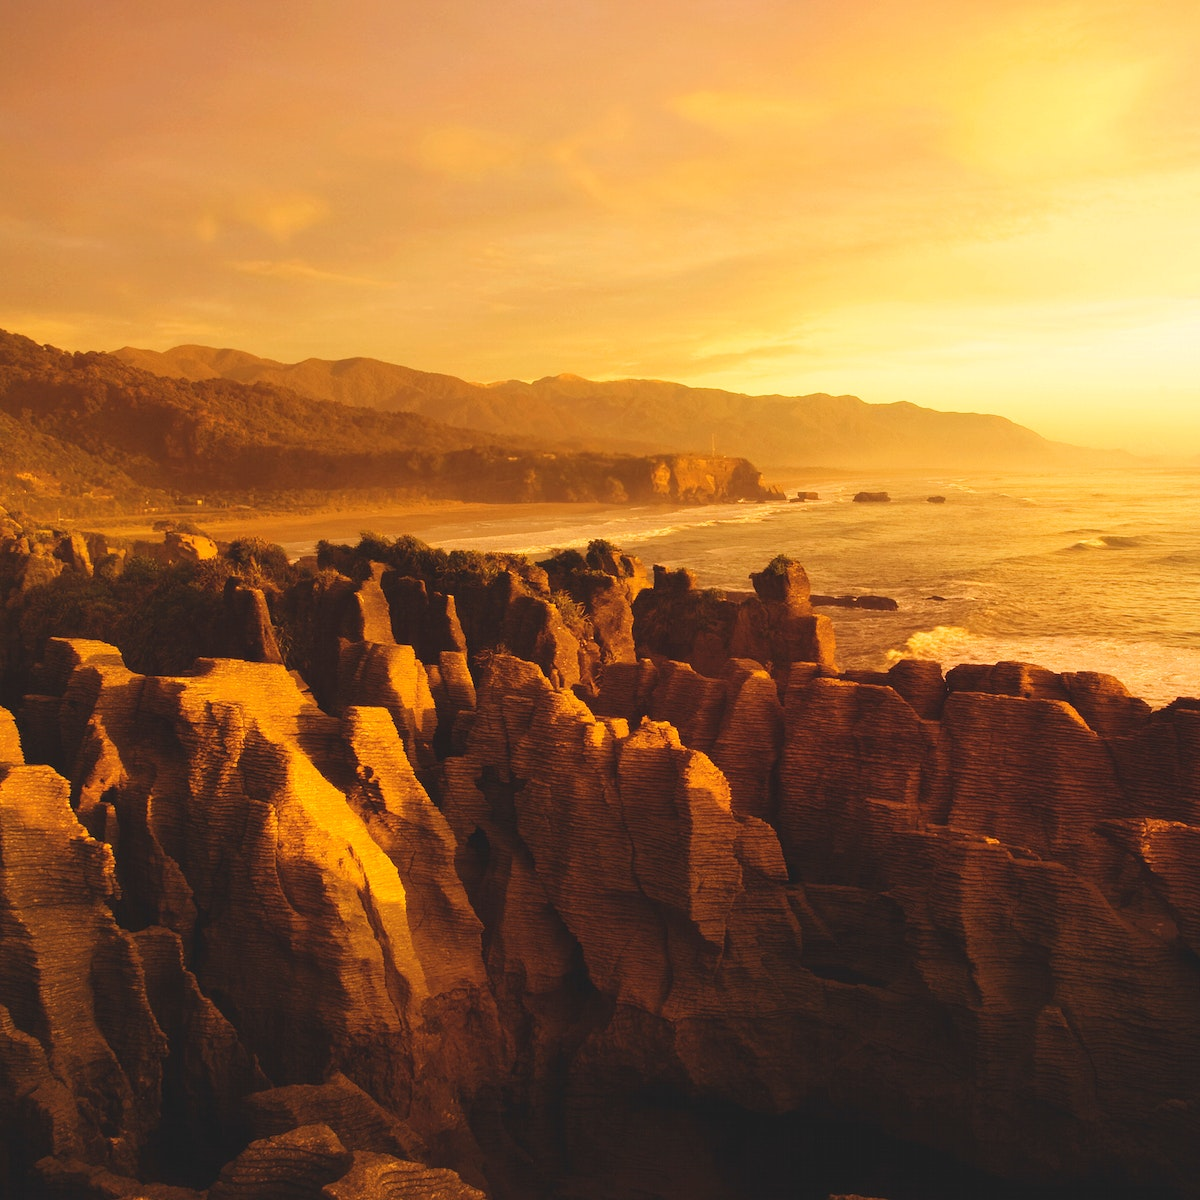 Landscape of mountain cliff by the beach coast nature scenic